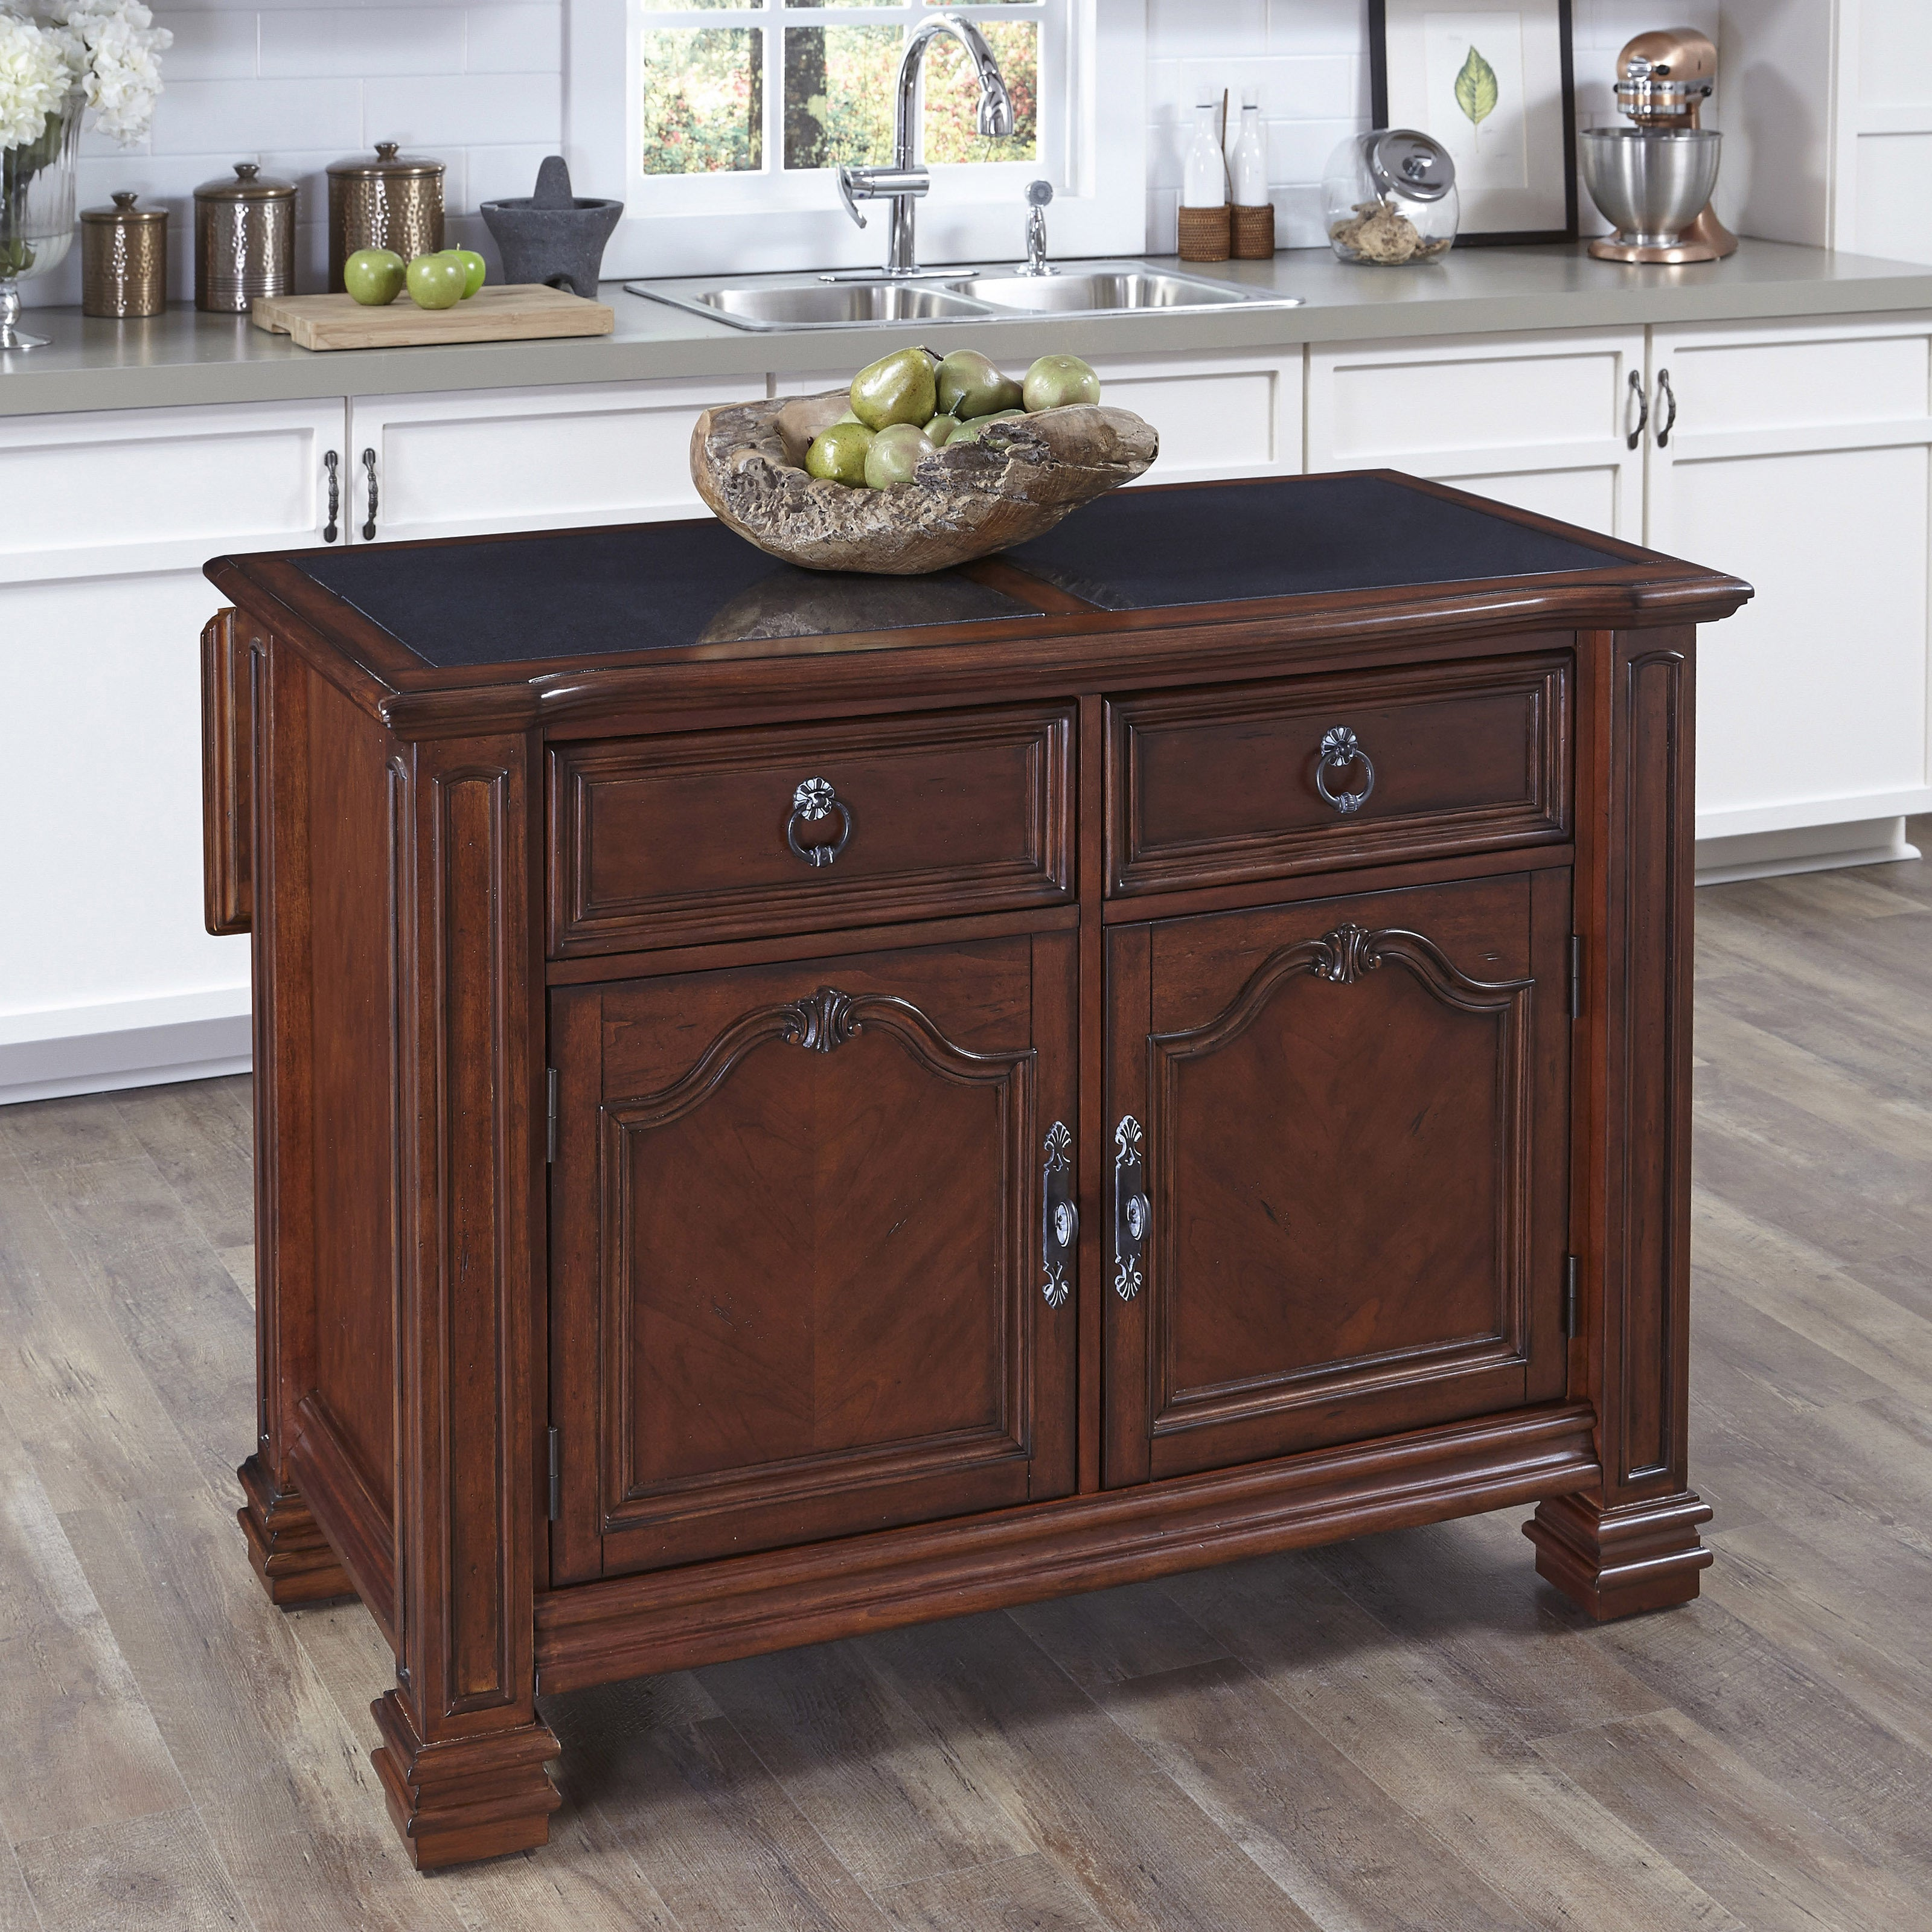 Shop Gracewood Hollow Stoker Kitchen Island with Inset ...